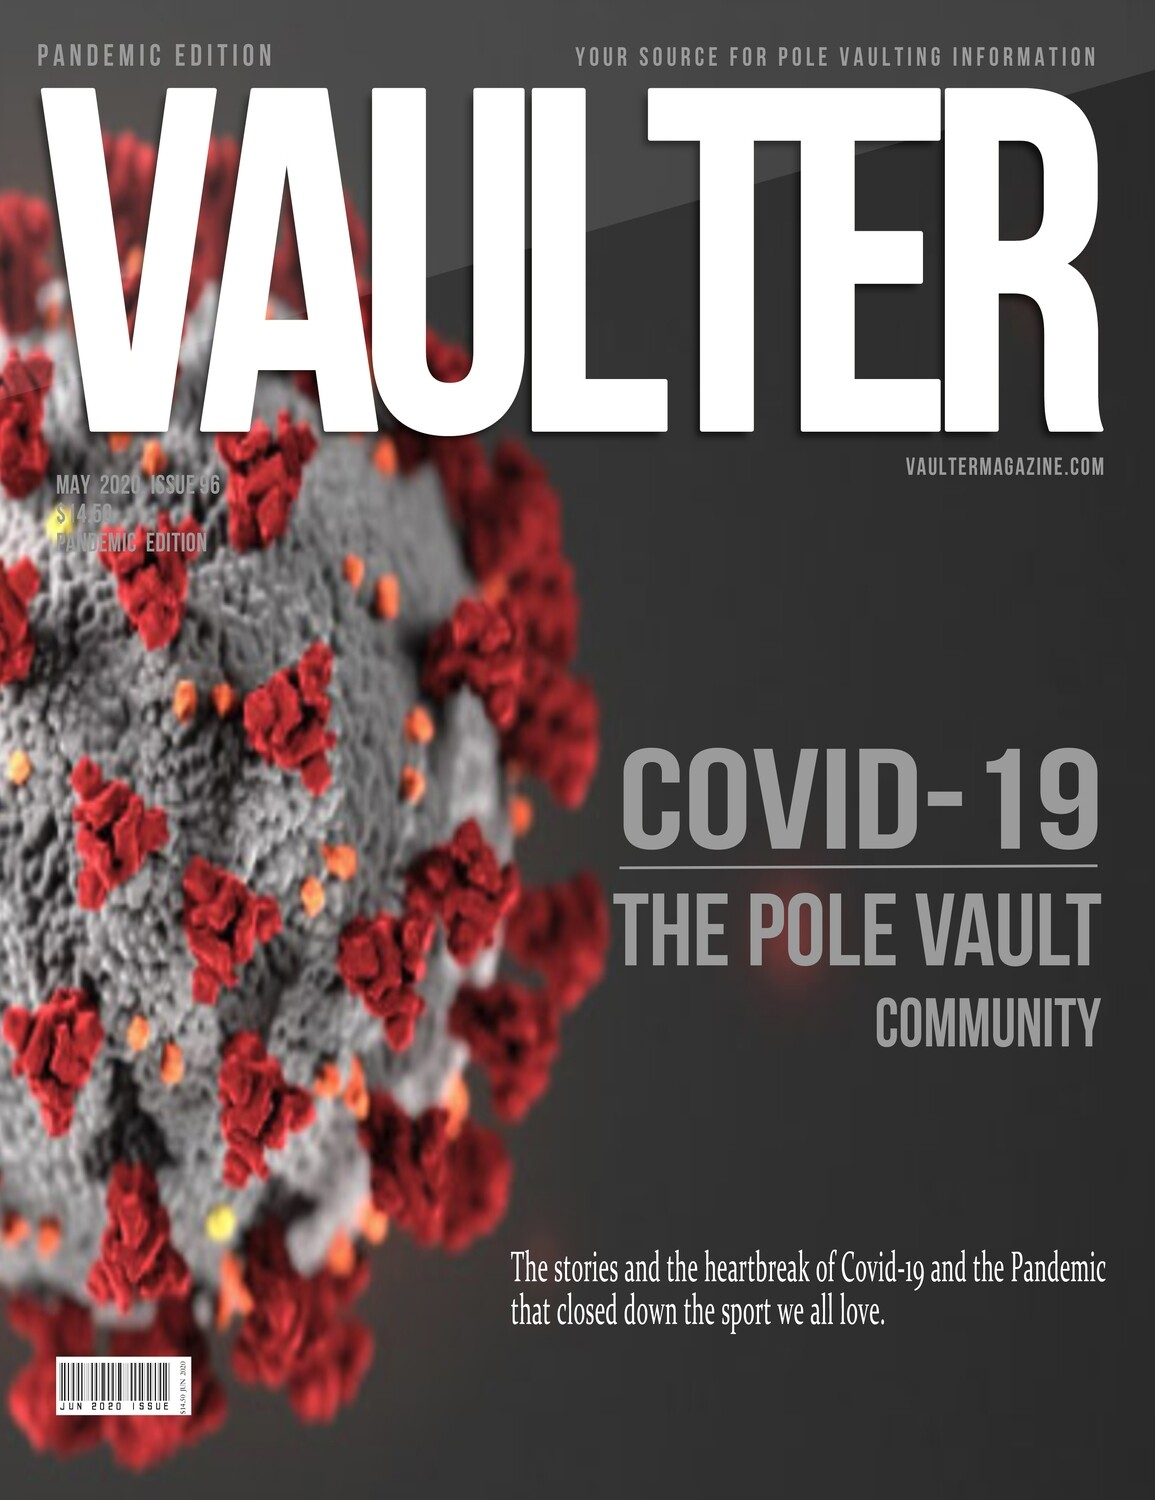 May 2020 Covid-19 Issue of Vaulter Magazine - Digital Download